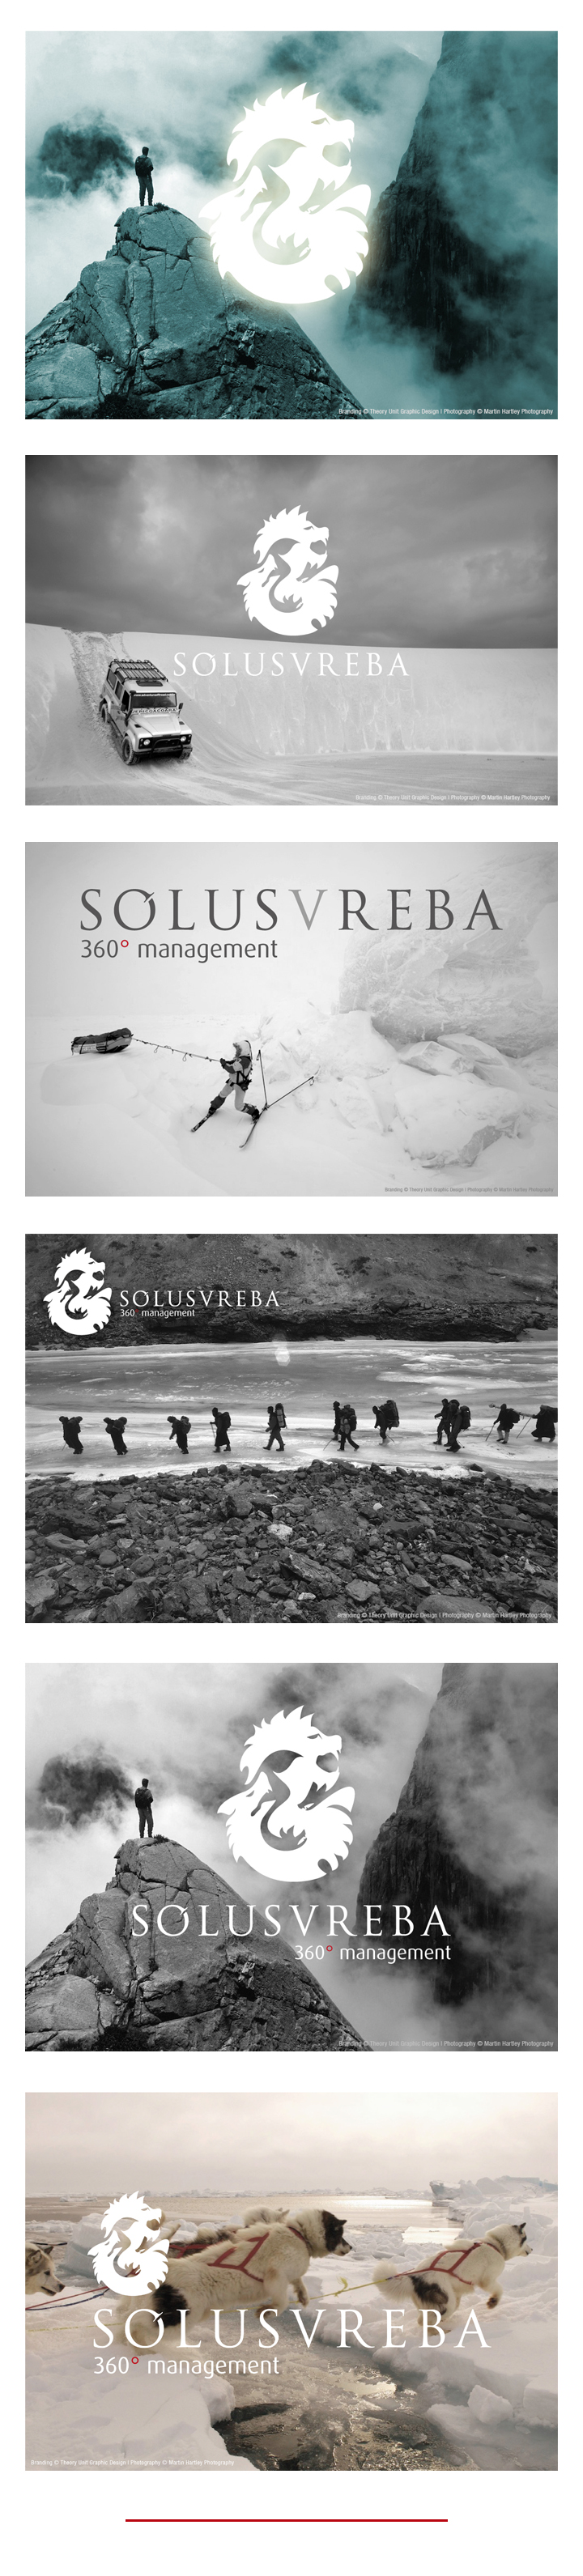 Solusvreba Adventure Management - Branding by Theory Unit in Sherborne